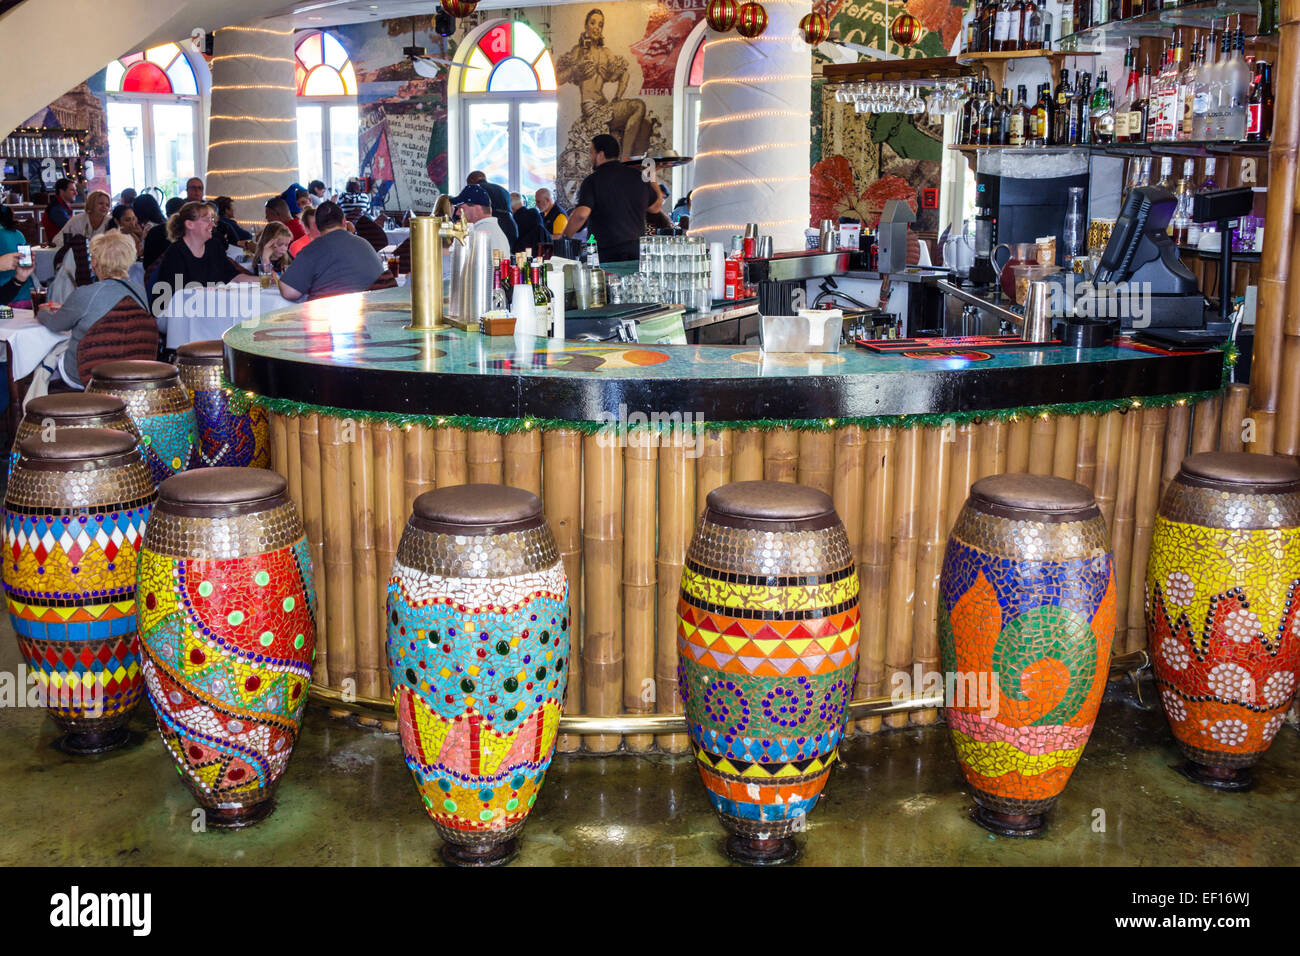 Orlando Florida Lake Buena Vista Downtown Disney shopping dining entertainment Bongo's Cuban Cafe inside restaurant - Stock Image